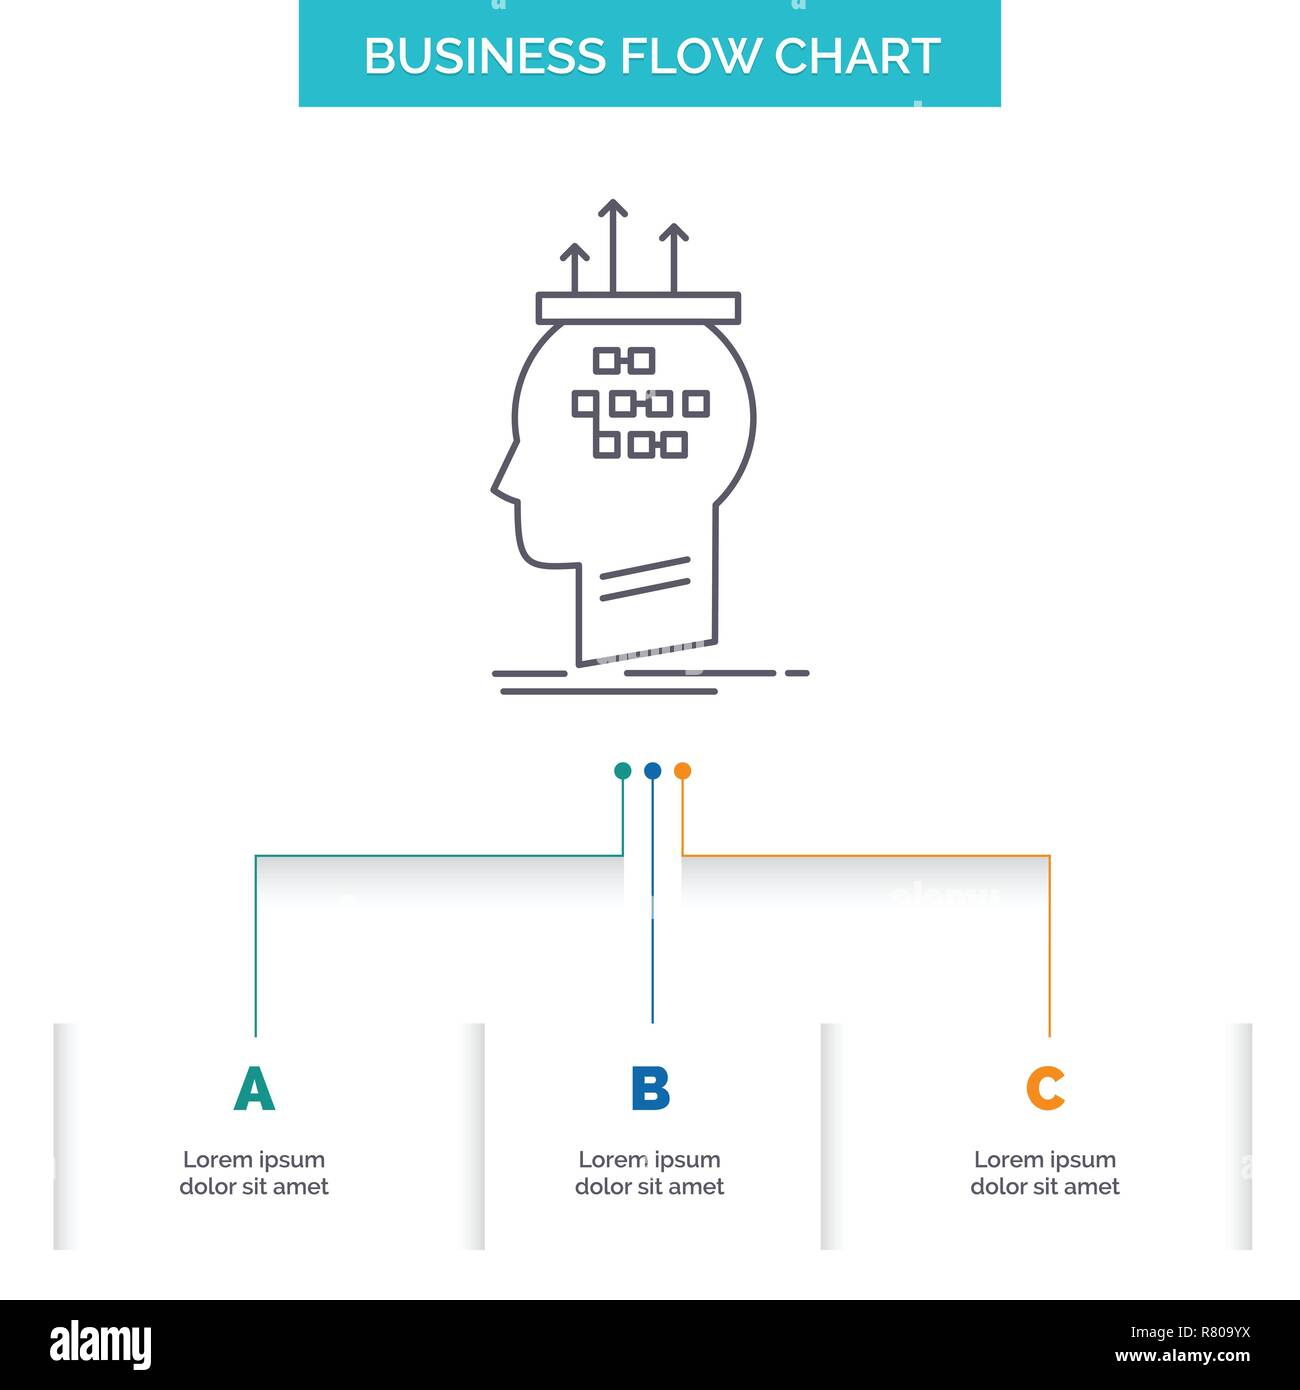 hight resolution of algorithm brain conclusion process thinking business flow chart design with 3 steps line icon for presentation background template place for text